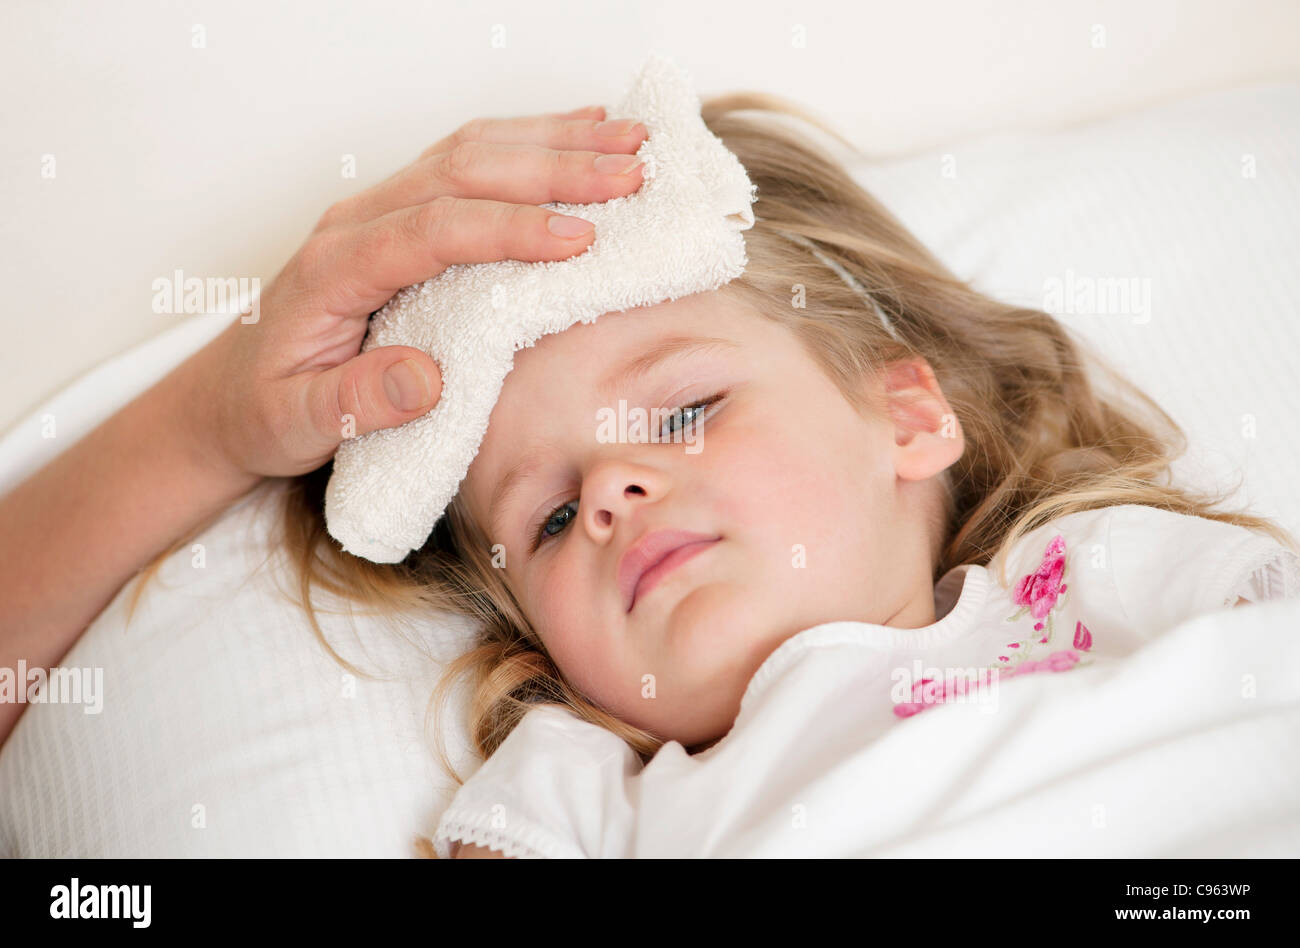 Soothing a child's fever. - Stock Image